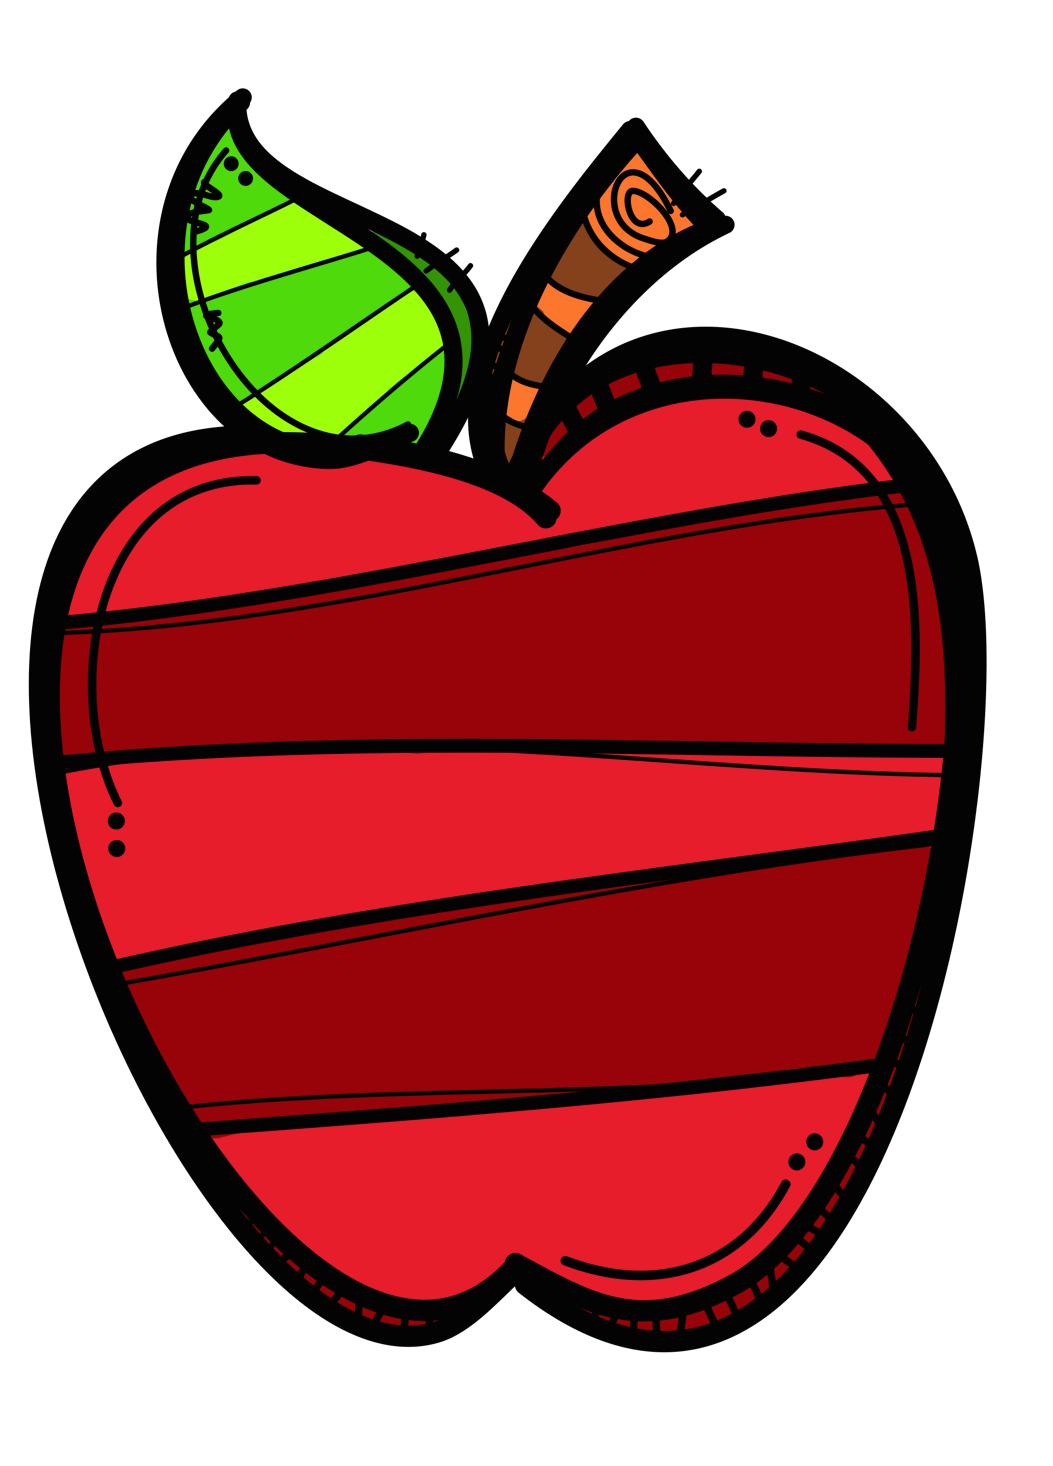 Clipart backpack food clipart. Pin by kathleen cummings